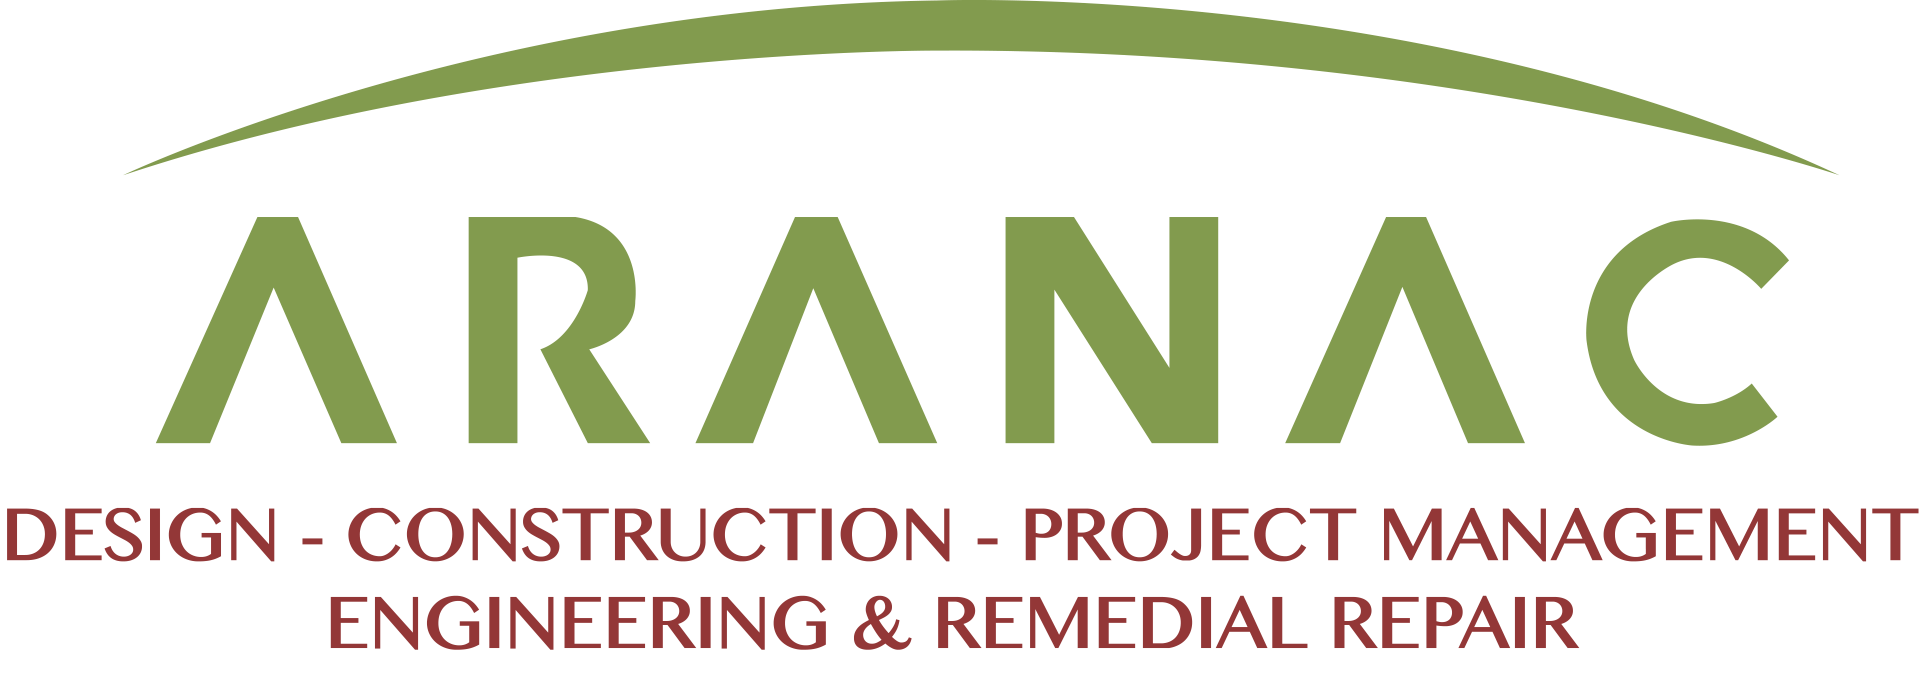 Aranac Contracting Pty Ltd